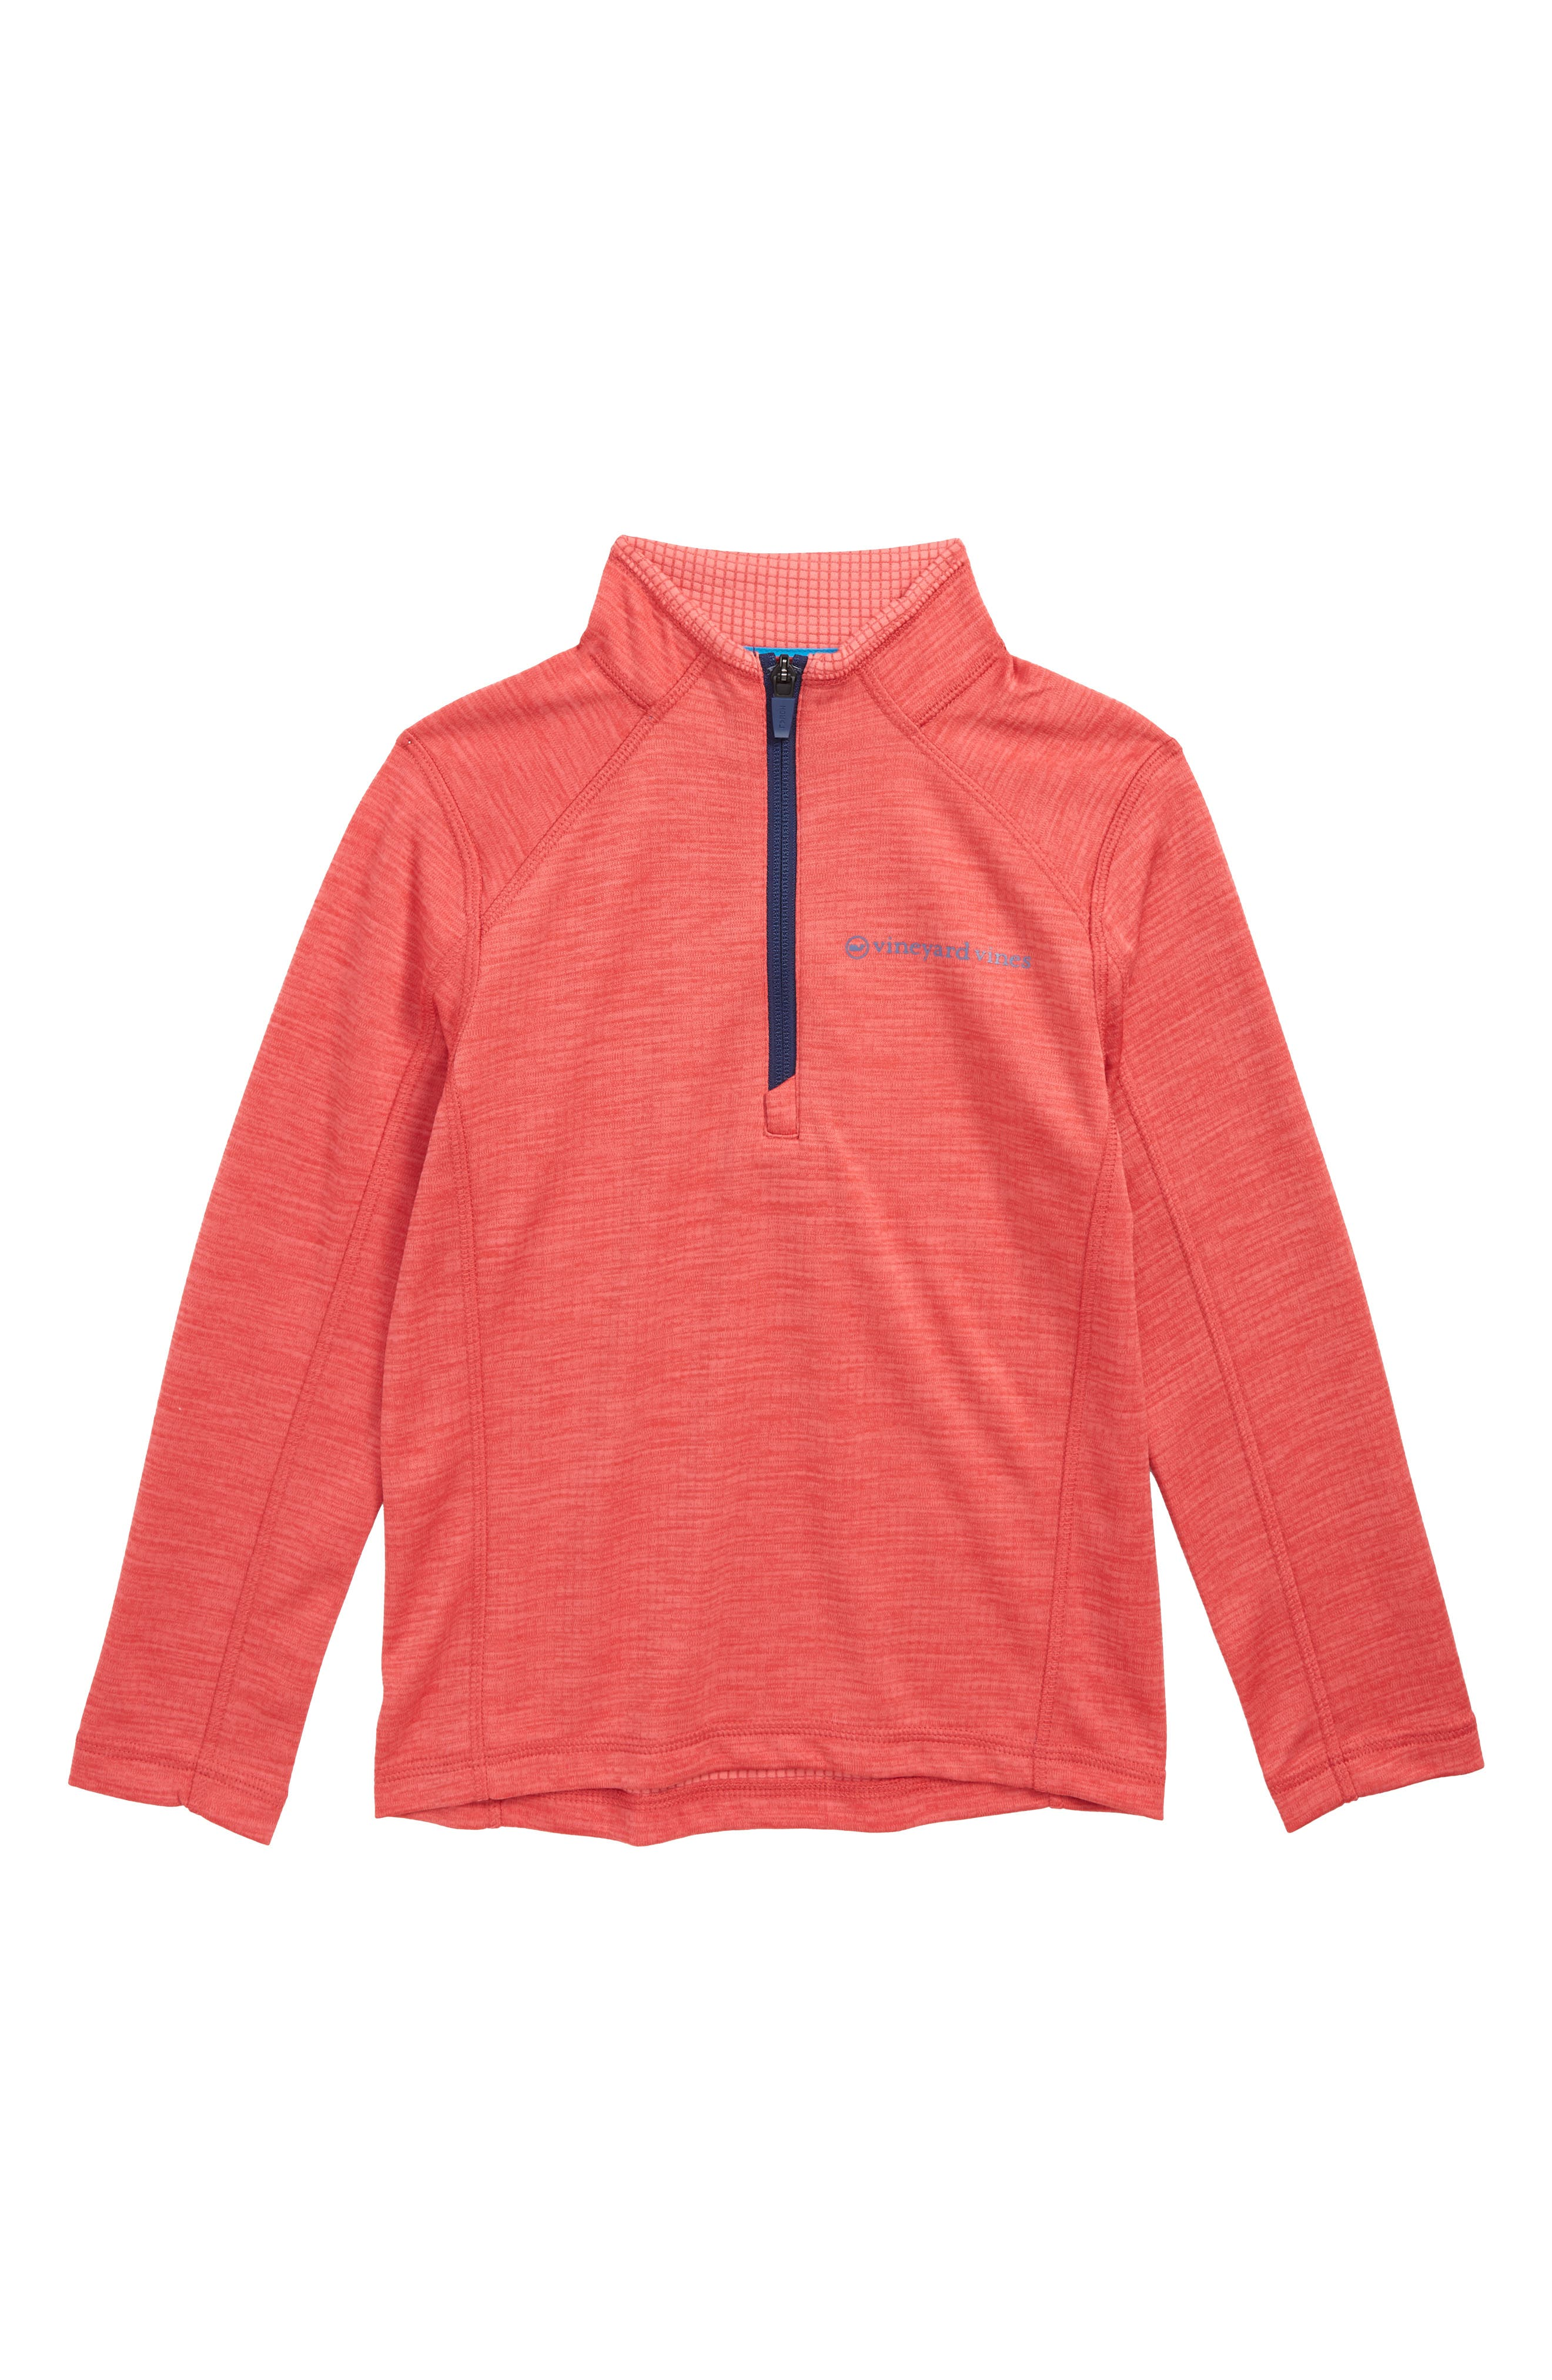 The New Nine Mile Half Zip Pullover,                             Main thumbnail 1, color,                             SAILORS RED